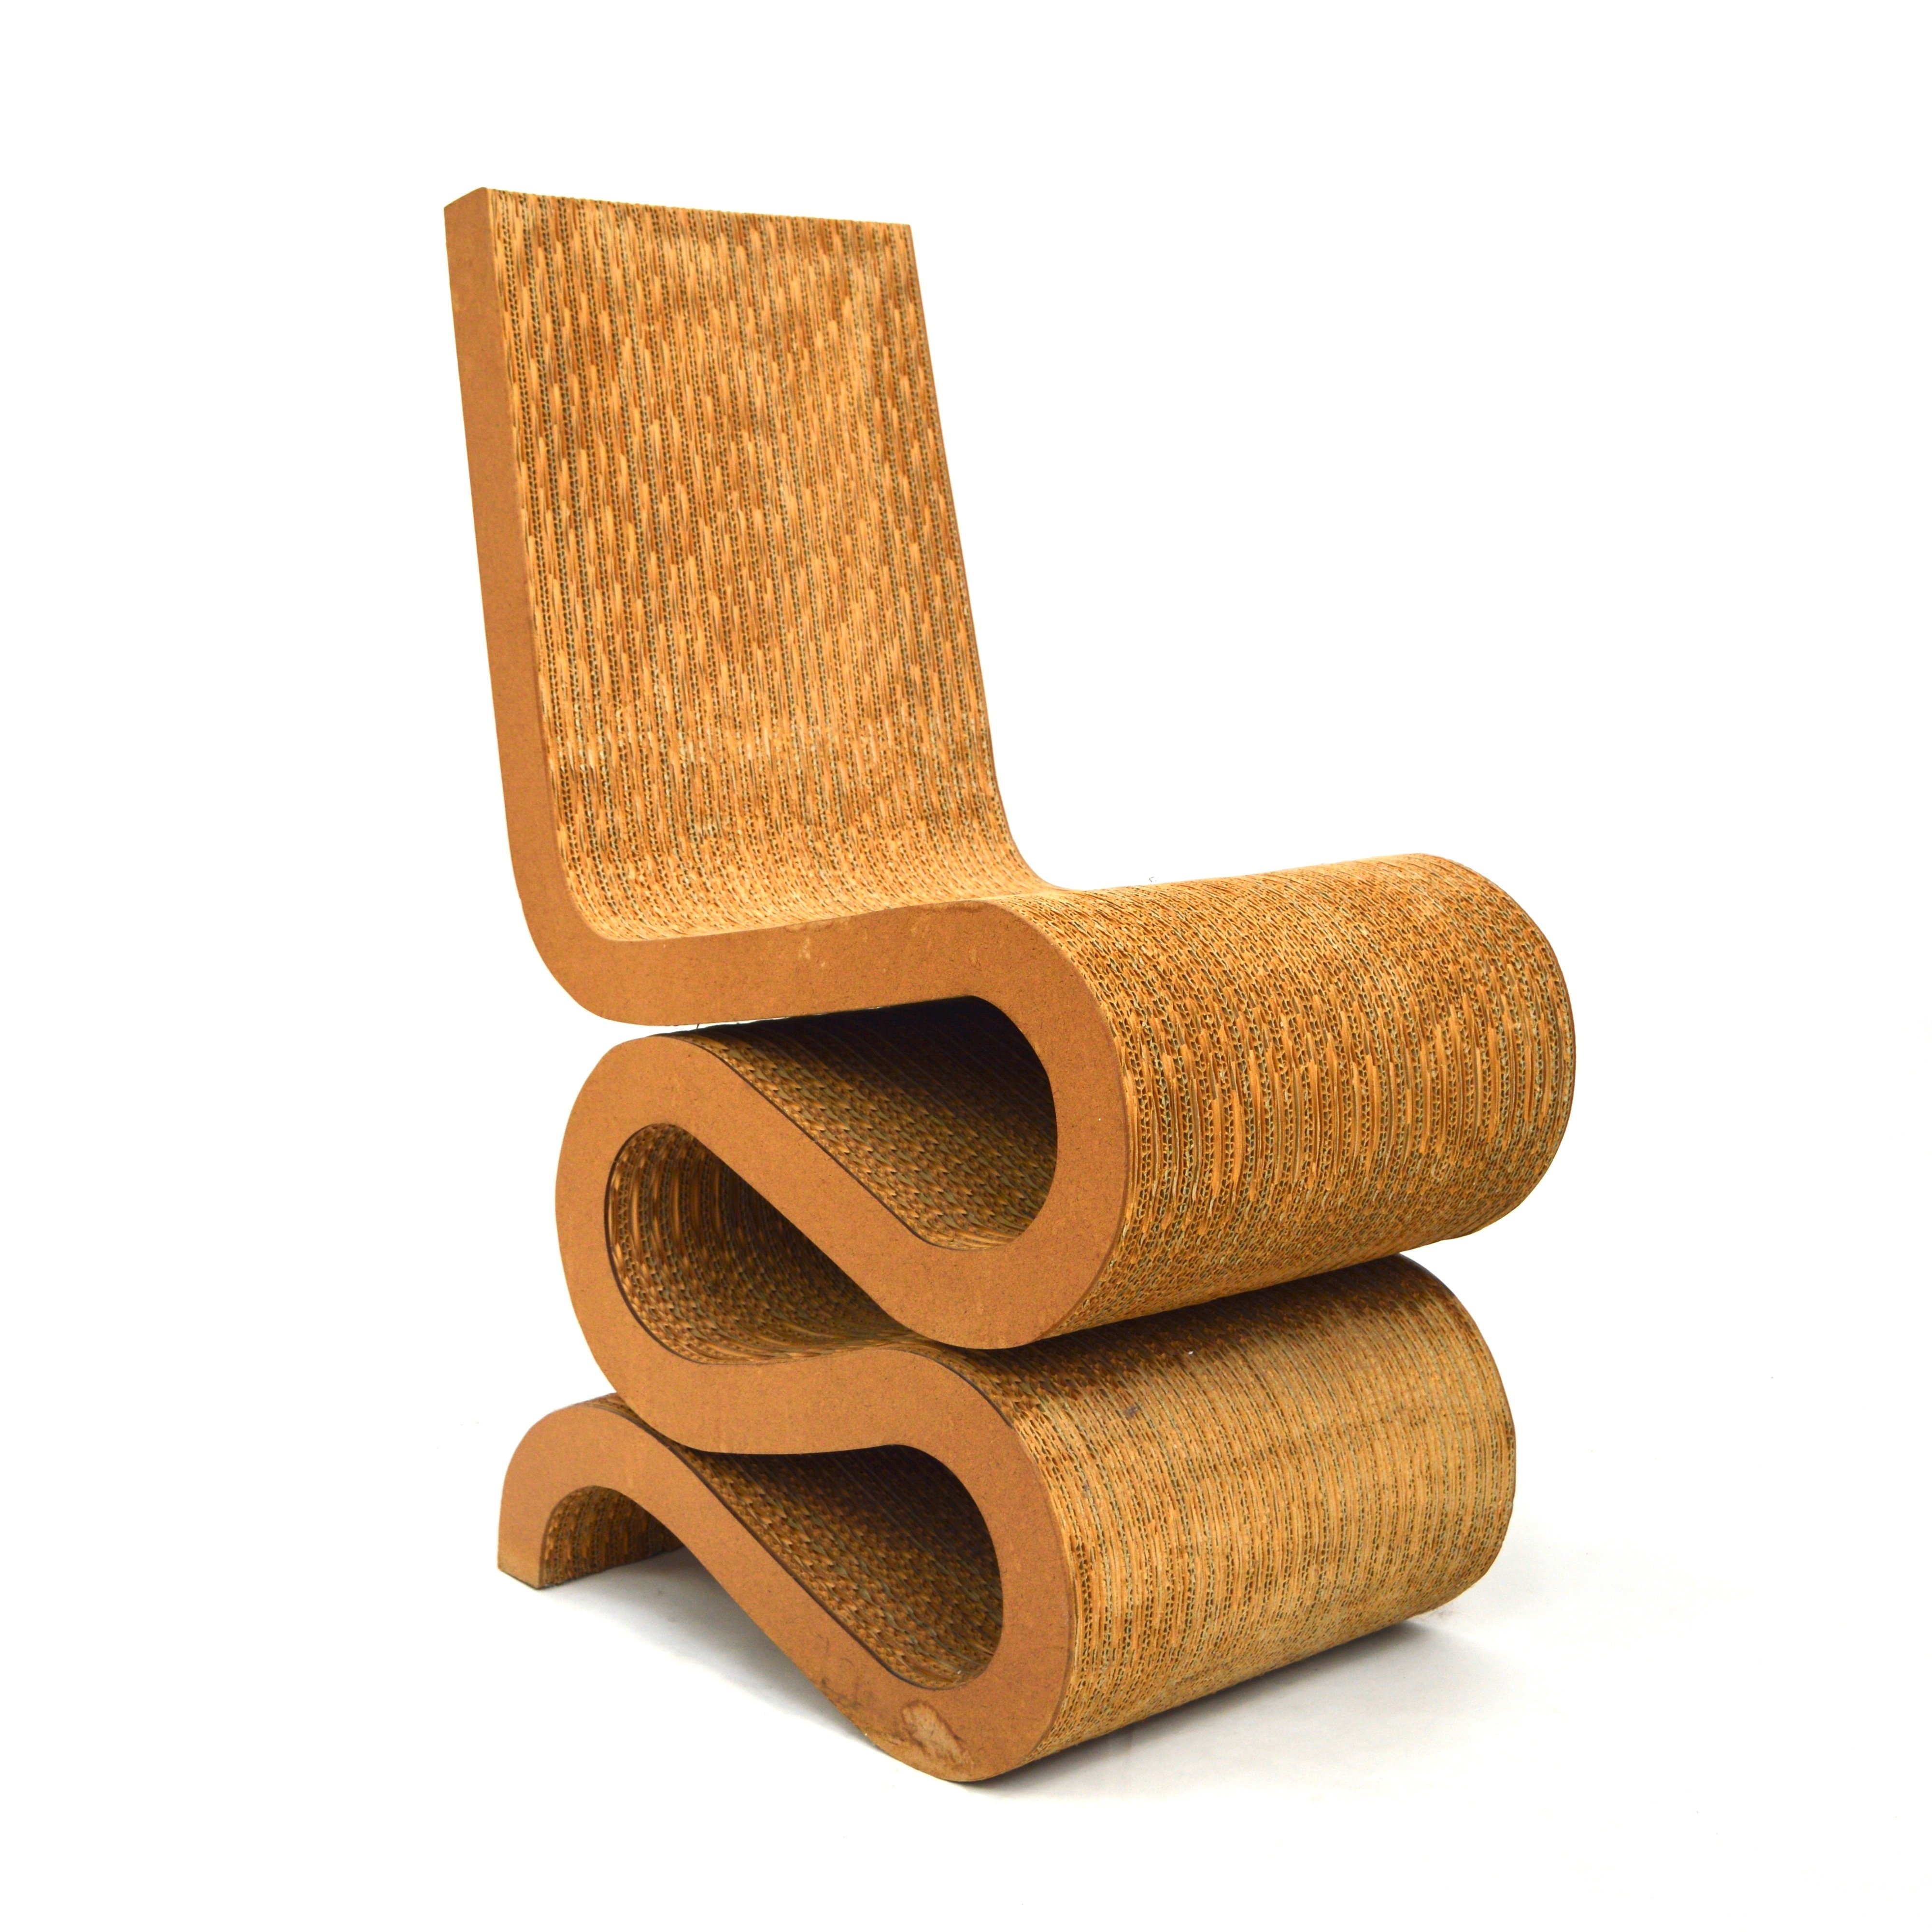 frank gehry chair dining seat covers john lewis wiggle by for vitra 65835